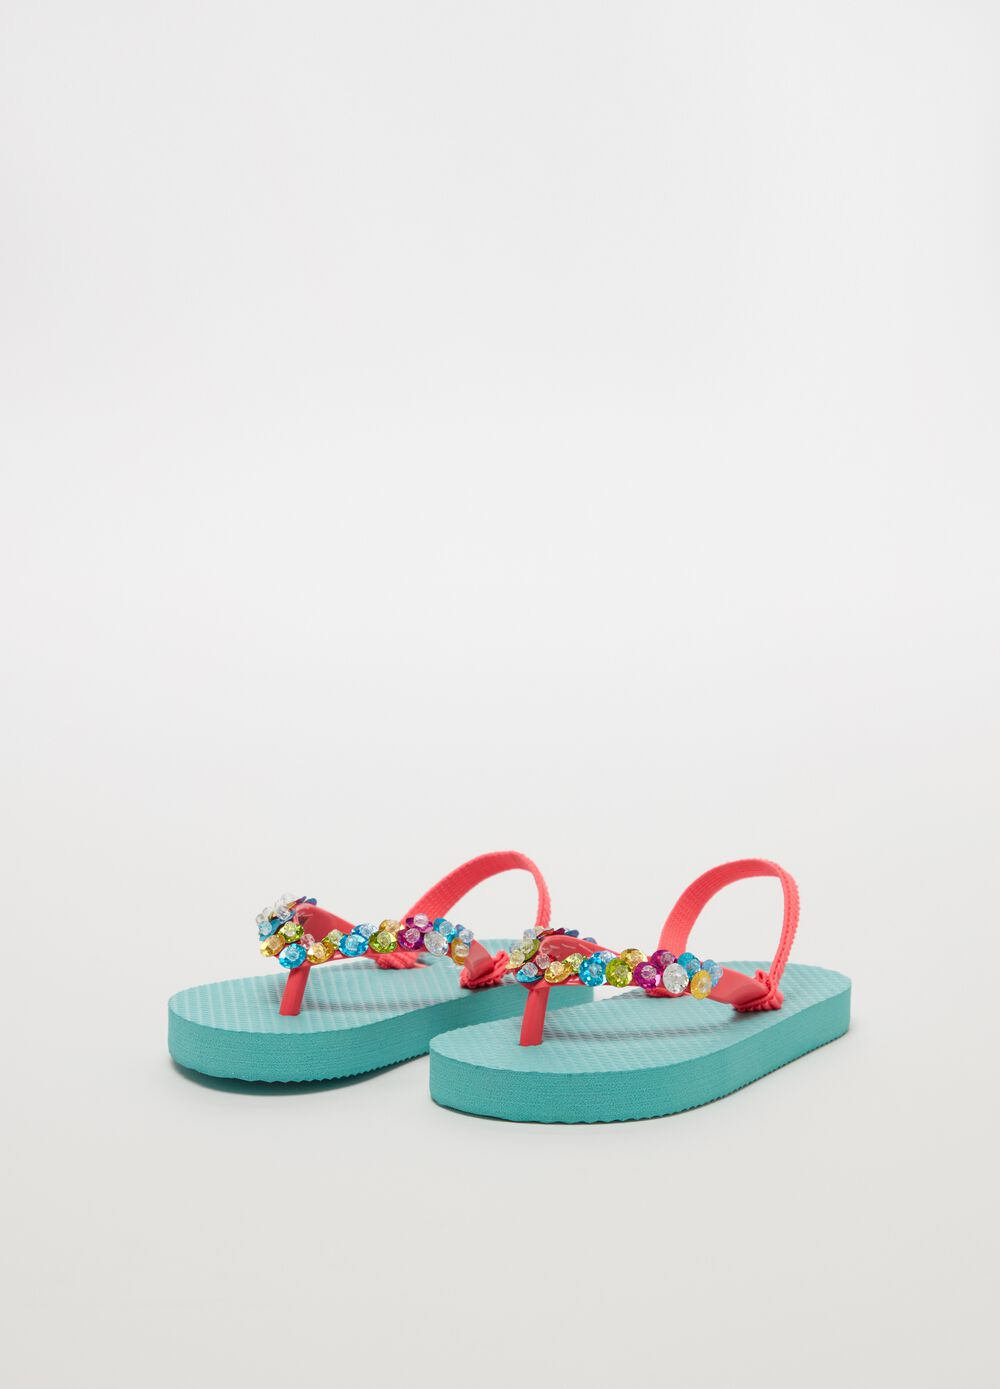 Flip flops with sequins and beads